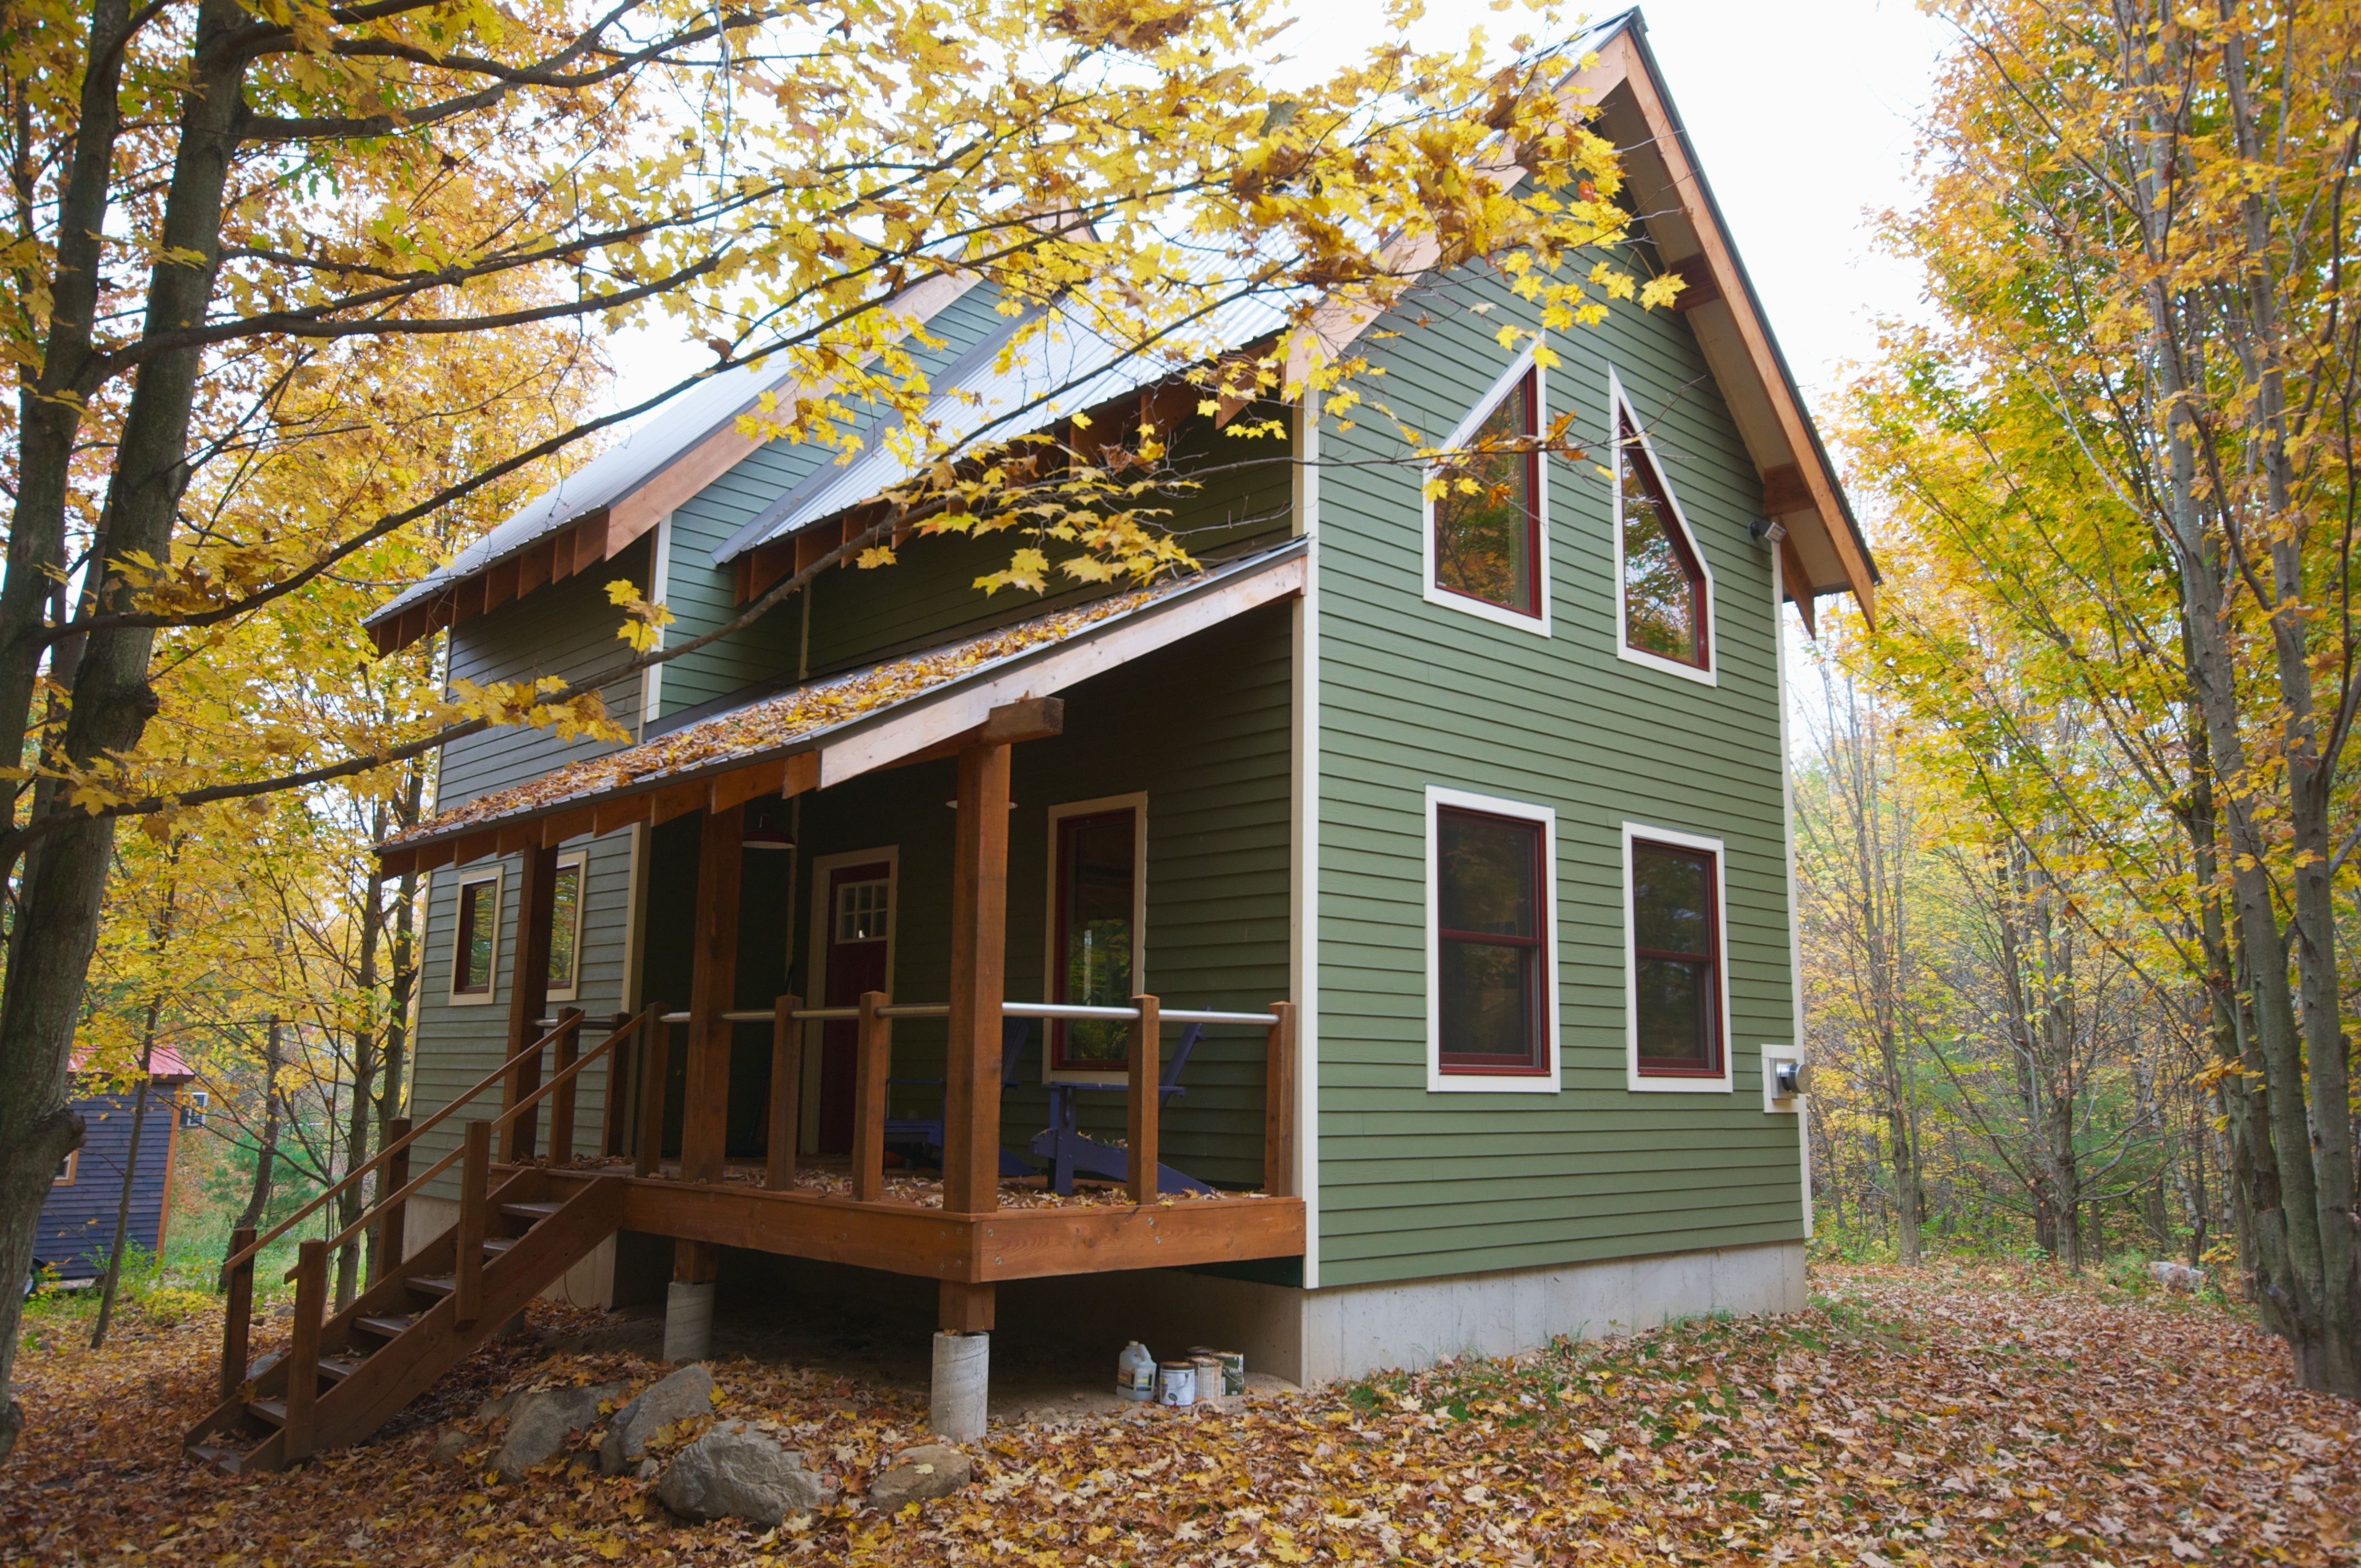 Green House in the Woods 1,200 sq. ft. 2 bedroom + loft